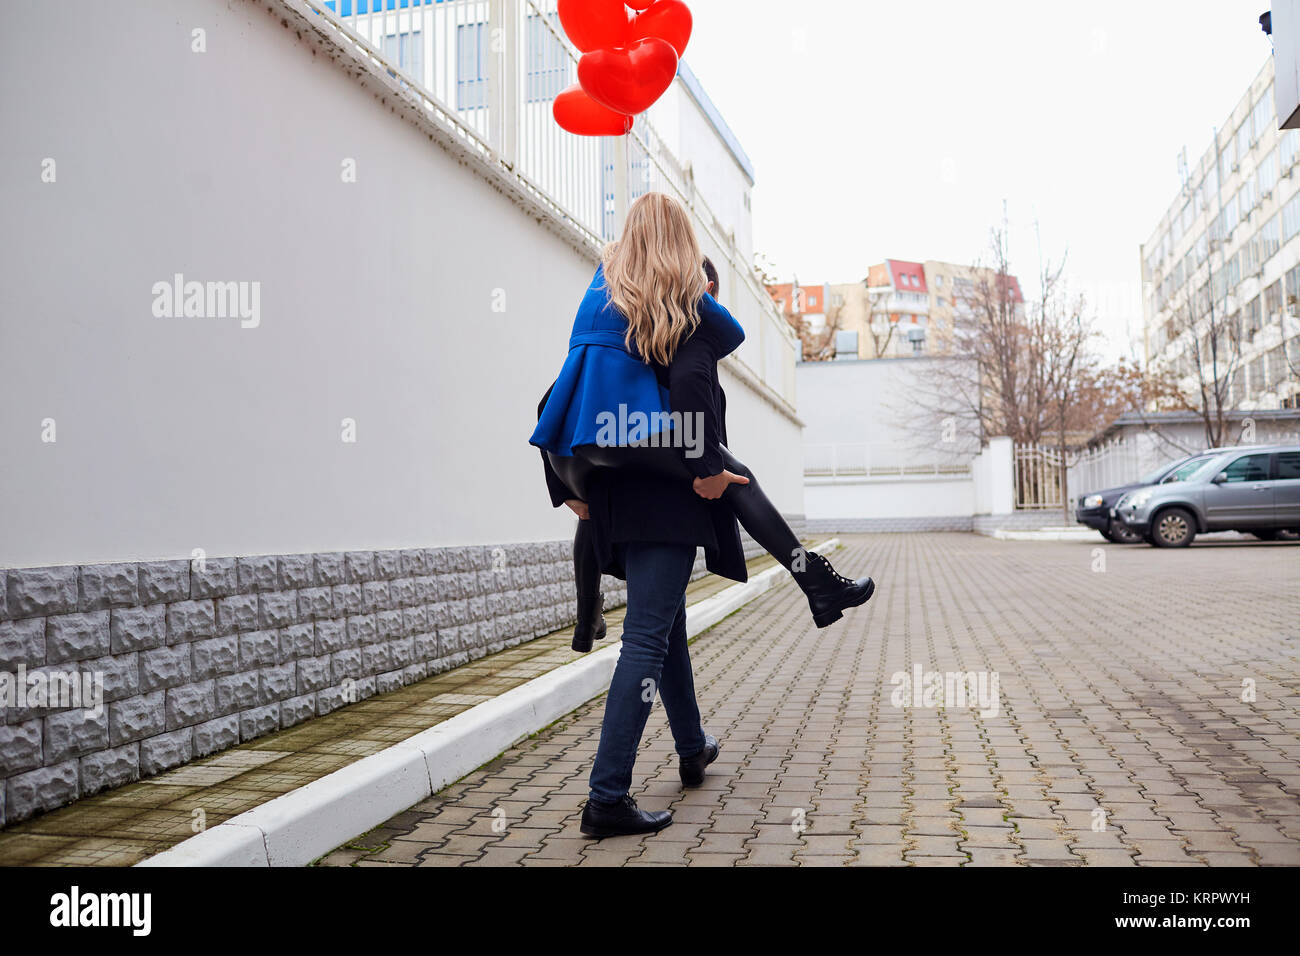 Girl piggyback on guy with red heart balloons on the street.  - Stock Image